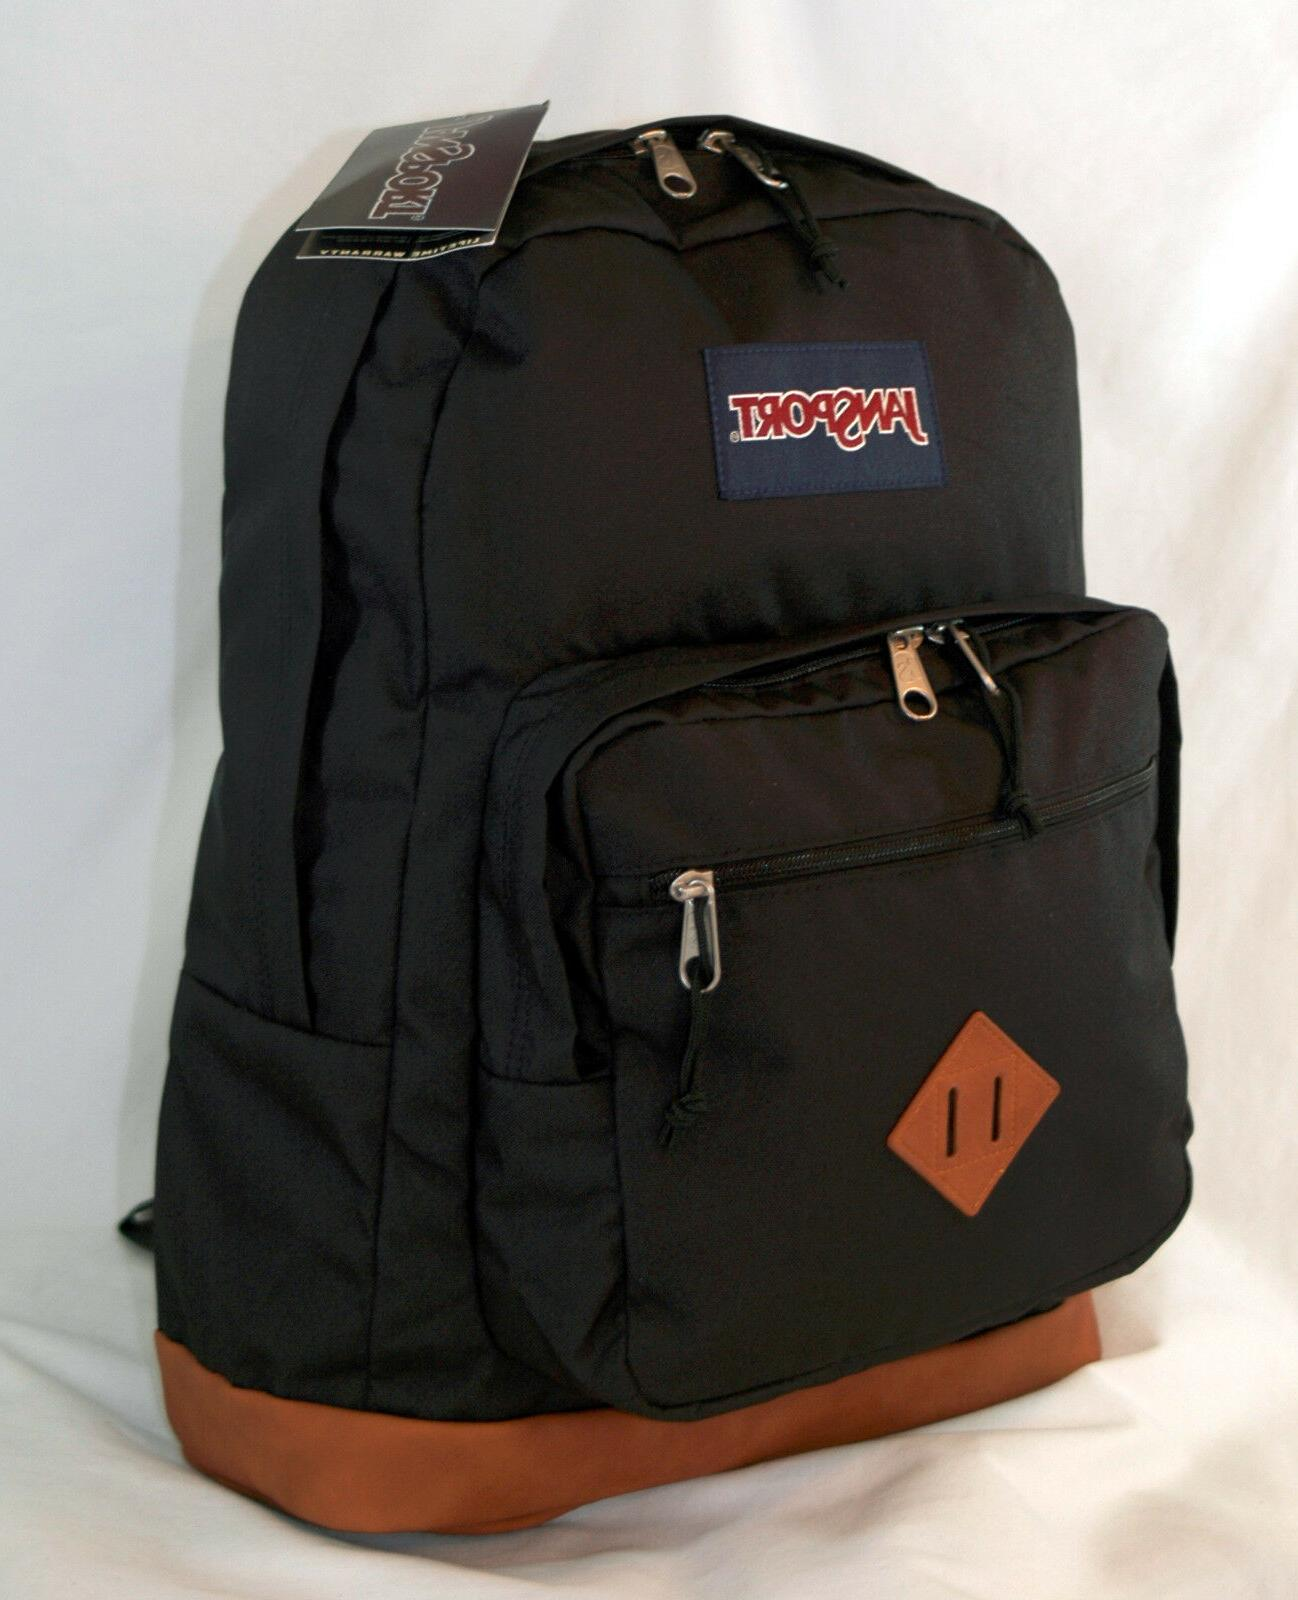 new city view laptop backpack black